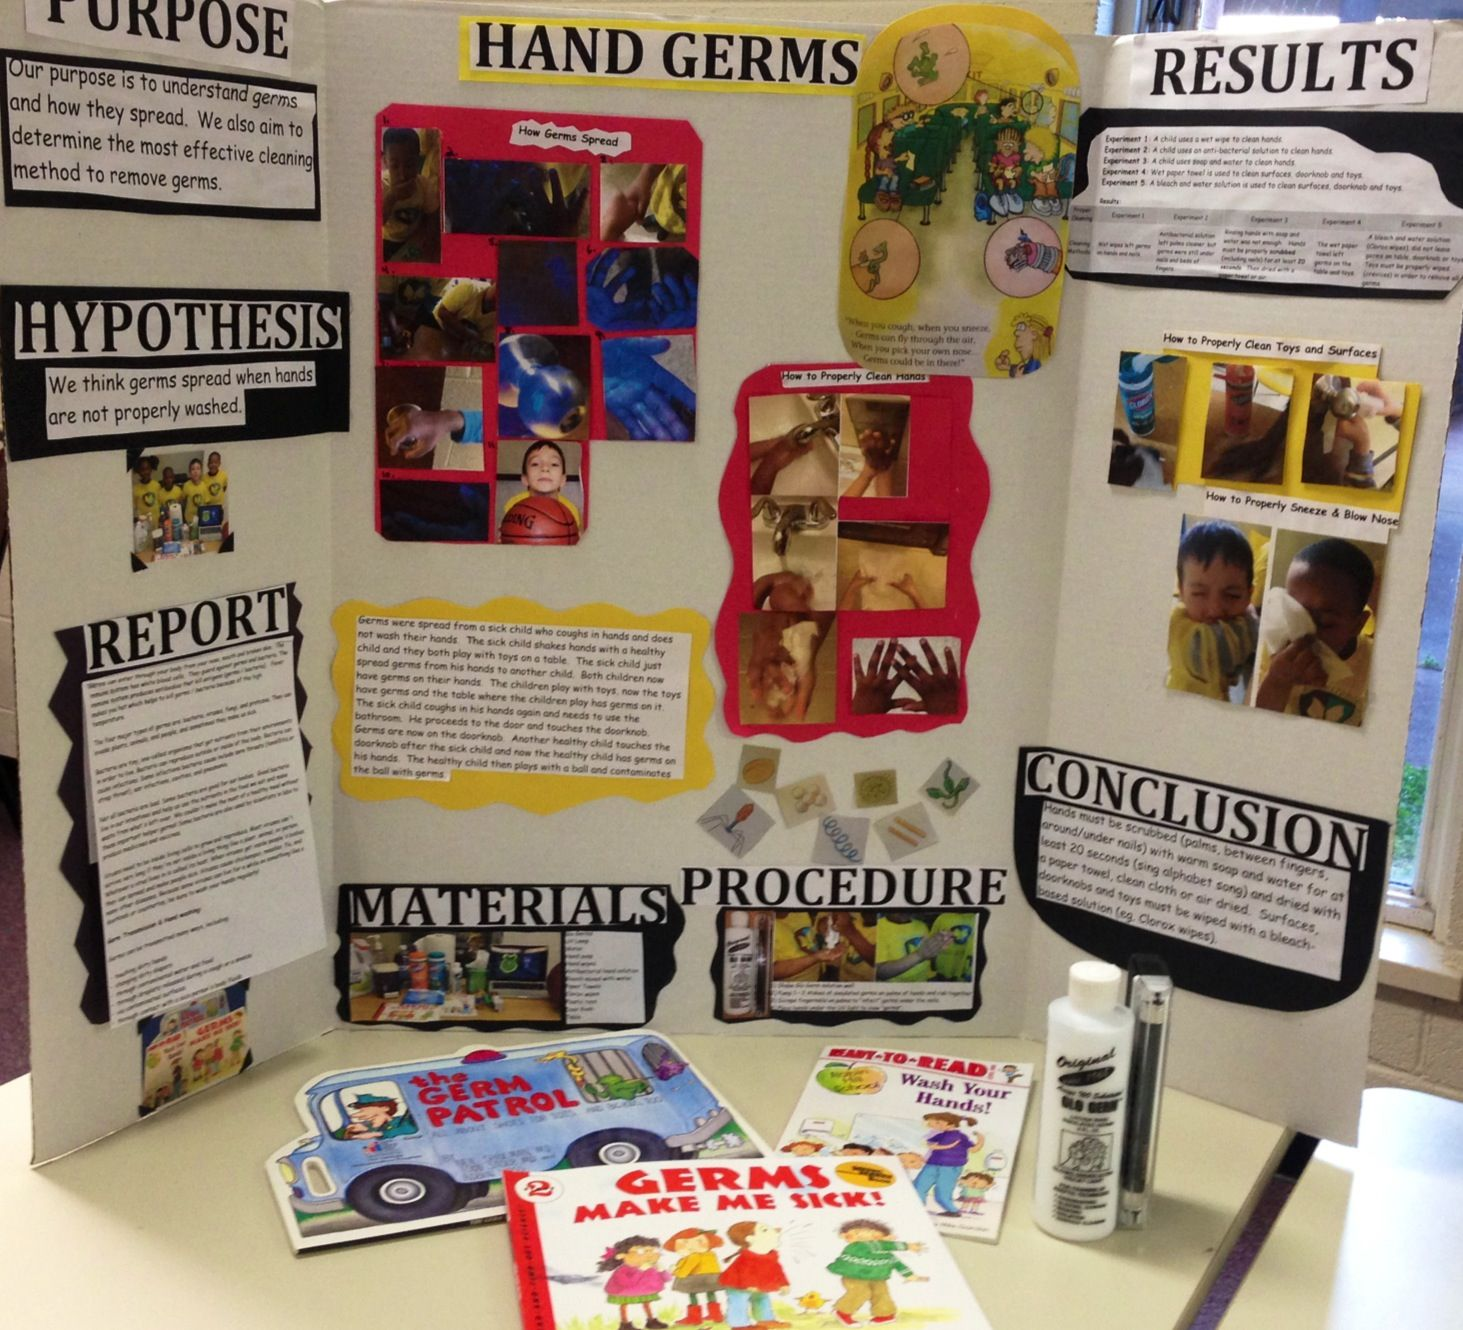 Group Science Fair Project Hand Germs With Images Cool